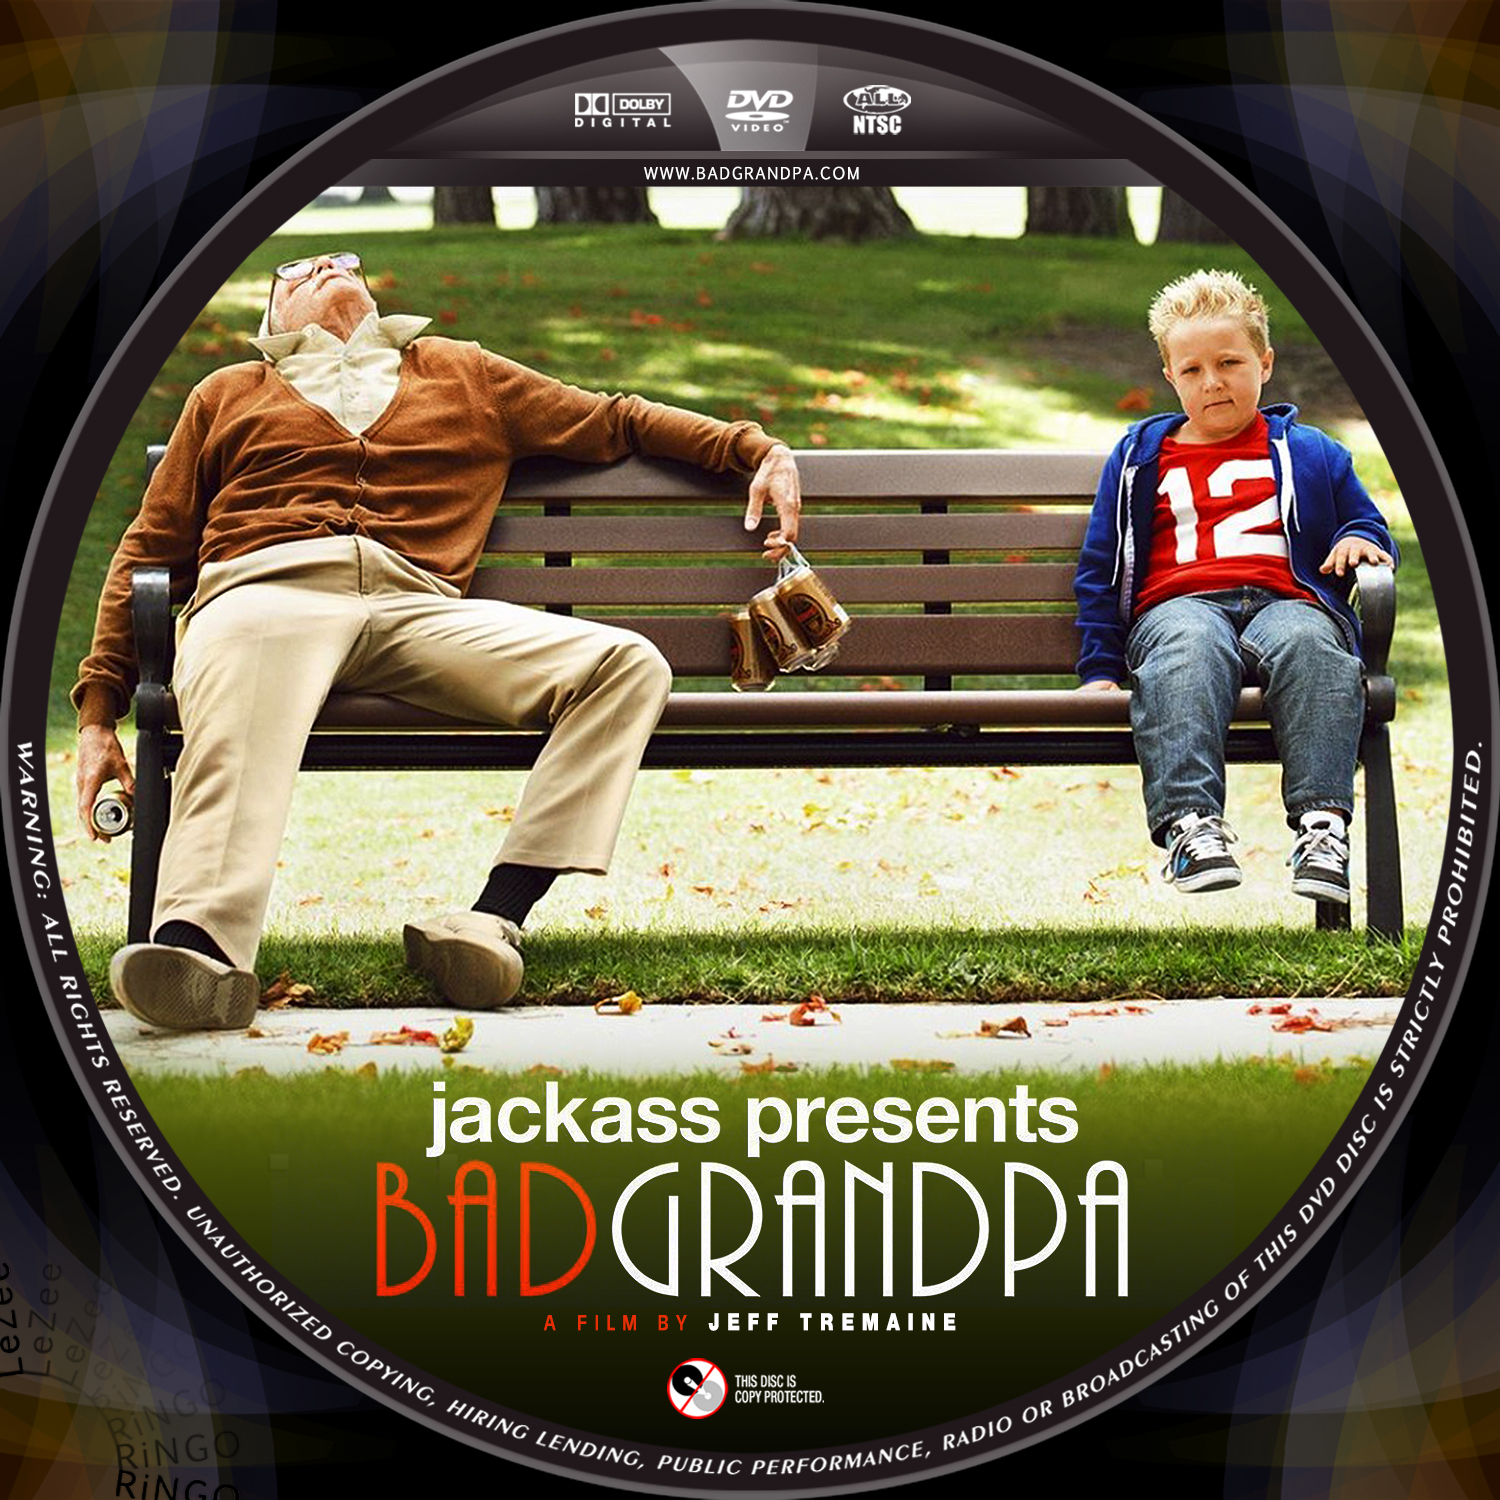 Bad Grandpa Cover Bad grandpa - high qualityBad Grandpa Dvd Cover